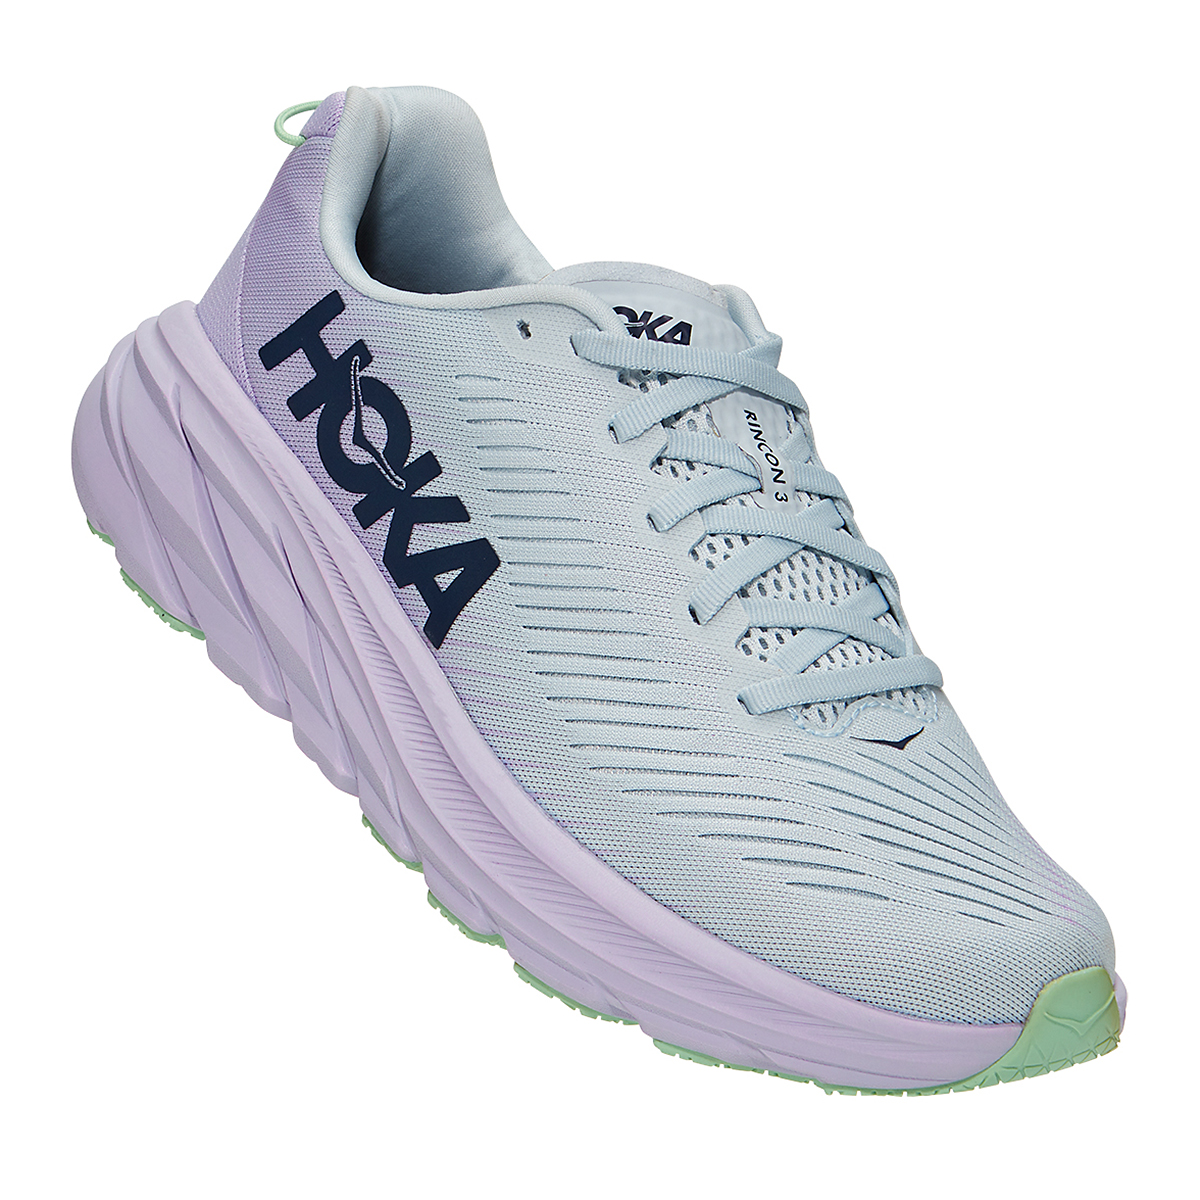 Women's Hoka One One Rincon 3 Running Shoe - Color: Plein Air/Orchid Hush - Size: 5 - Width: Regular, Plein Air/Orchid Hush, large, image 2